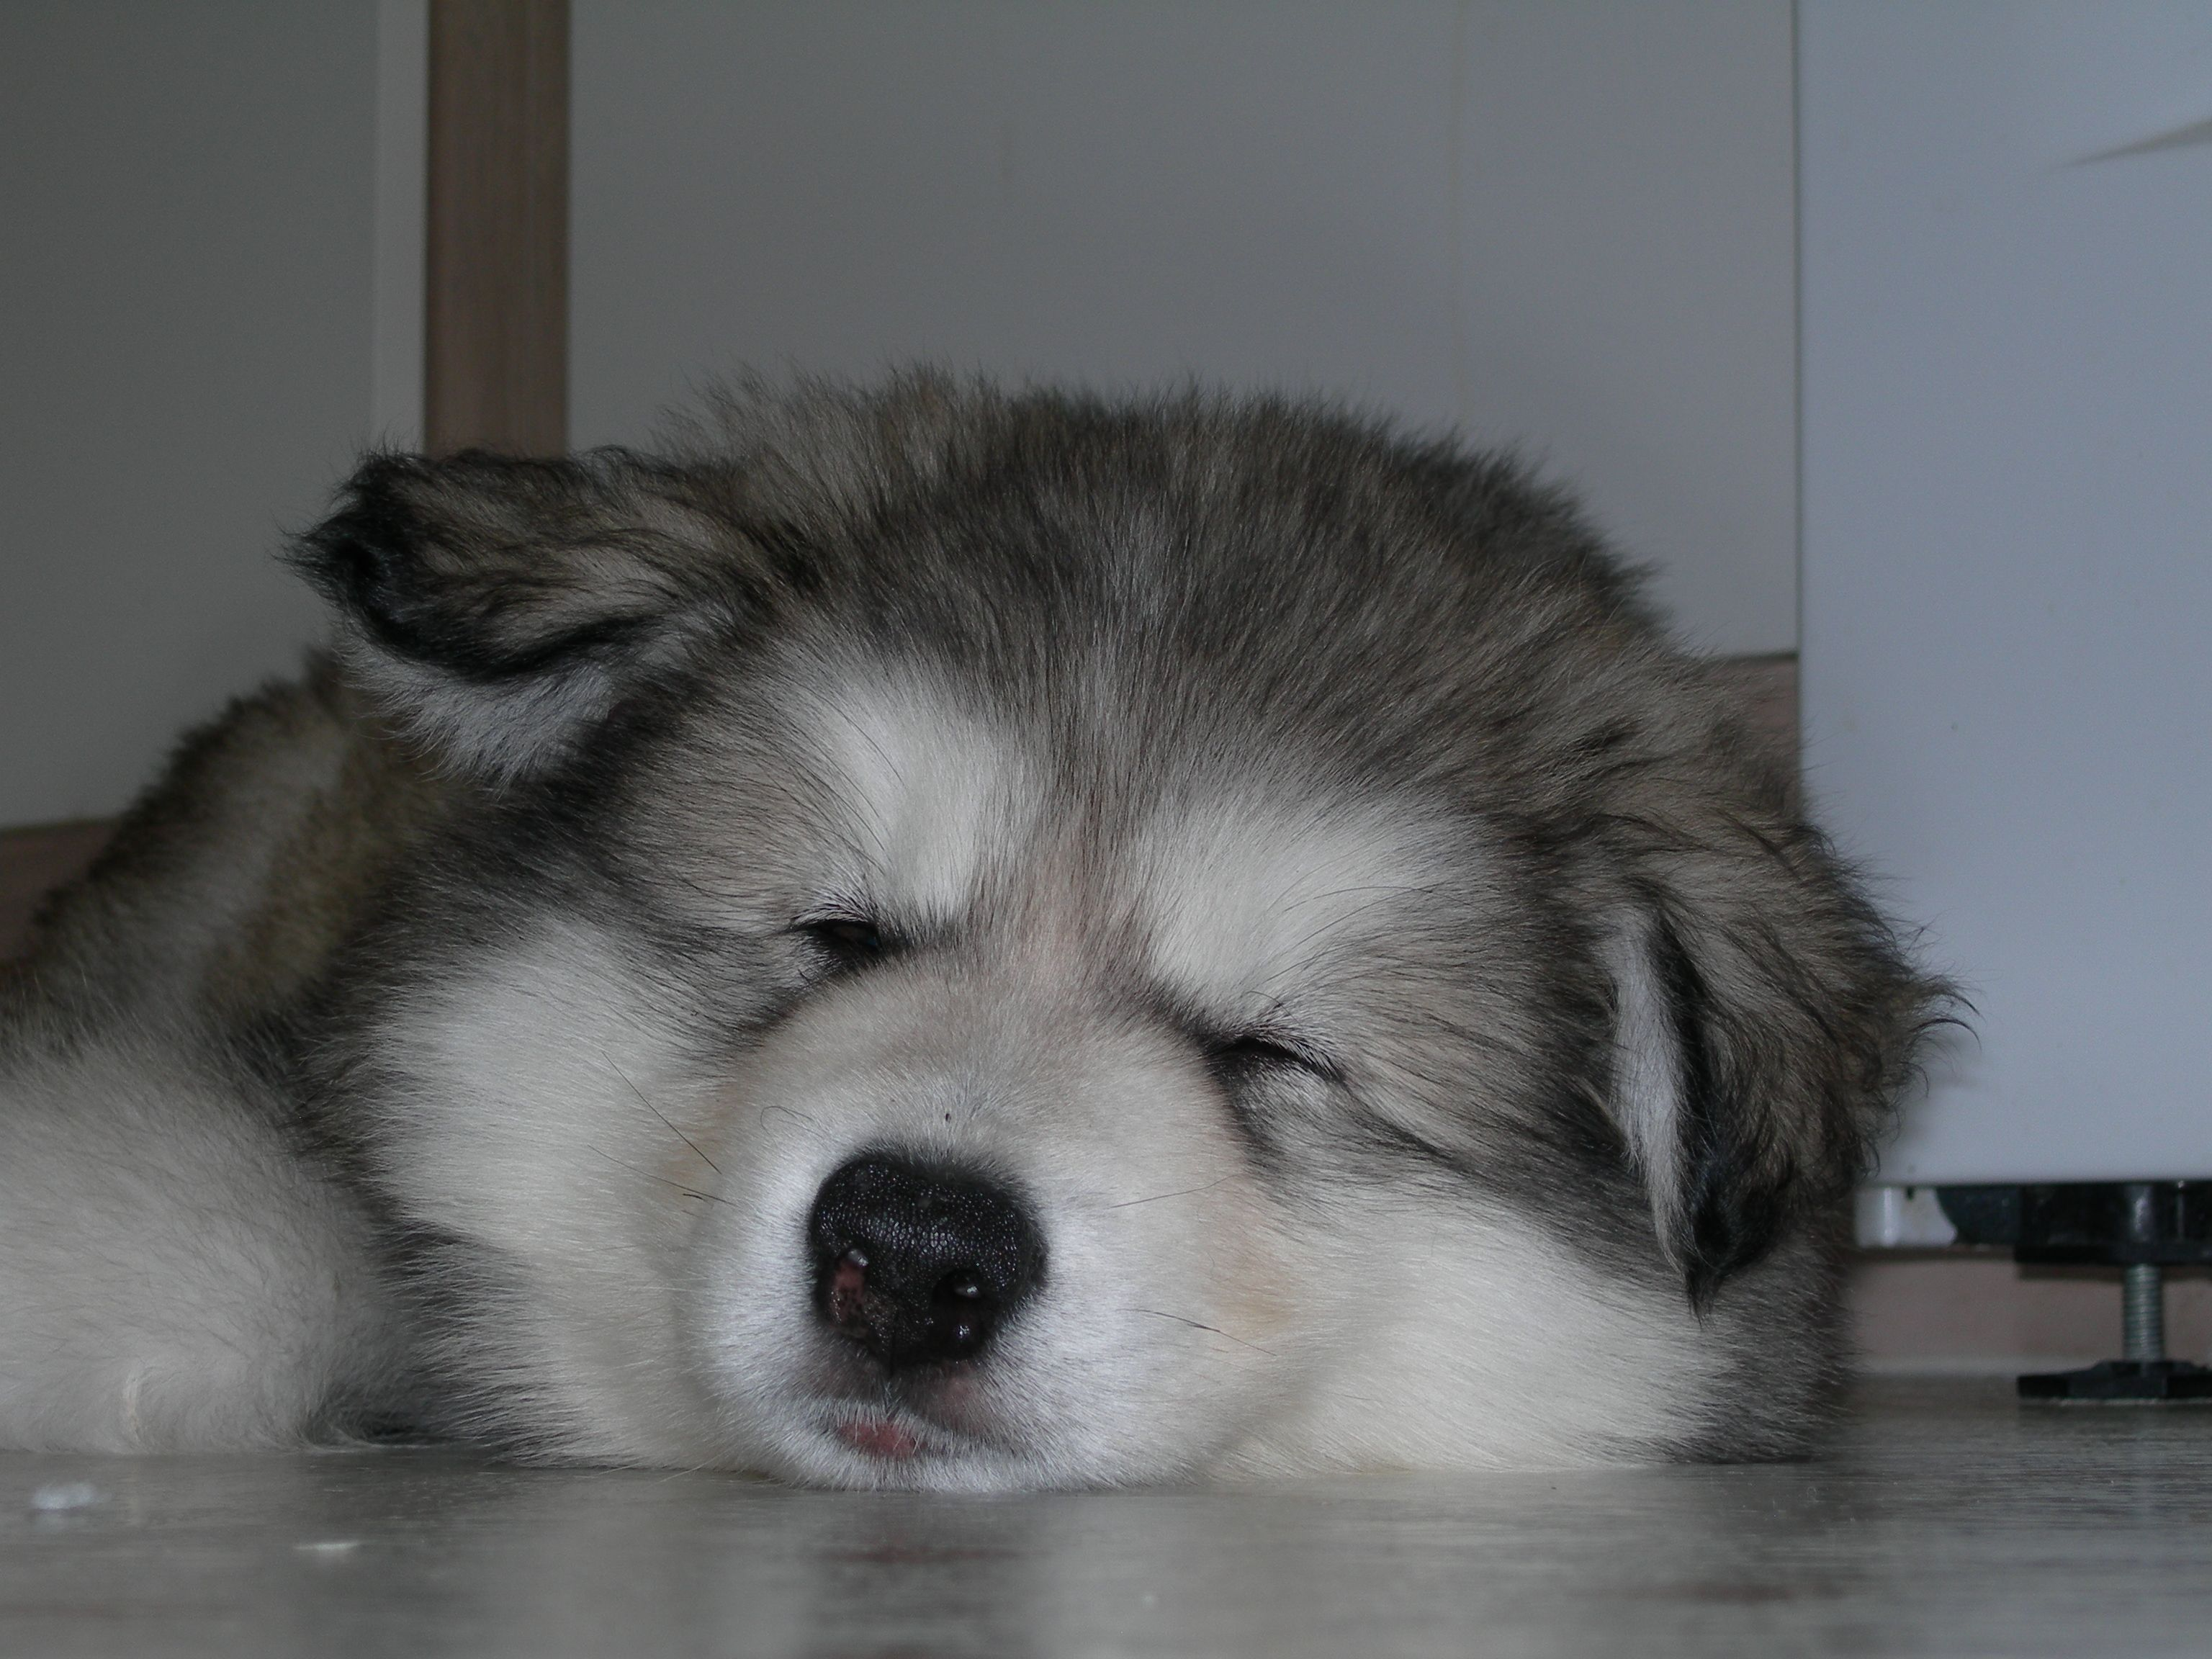 Pets For Sale Puppies For Sale Giant Alaskan Malamutes For Sale